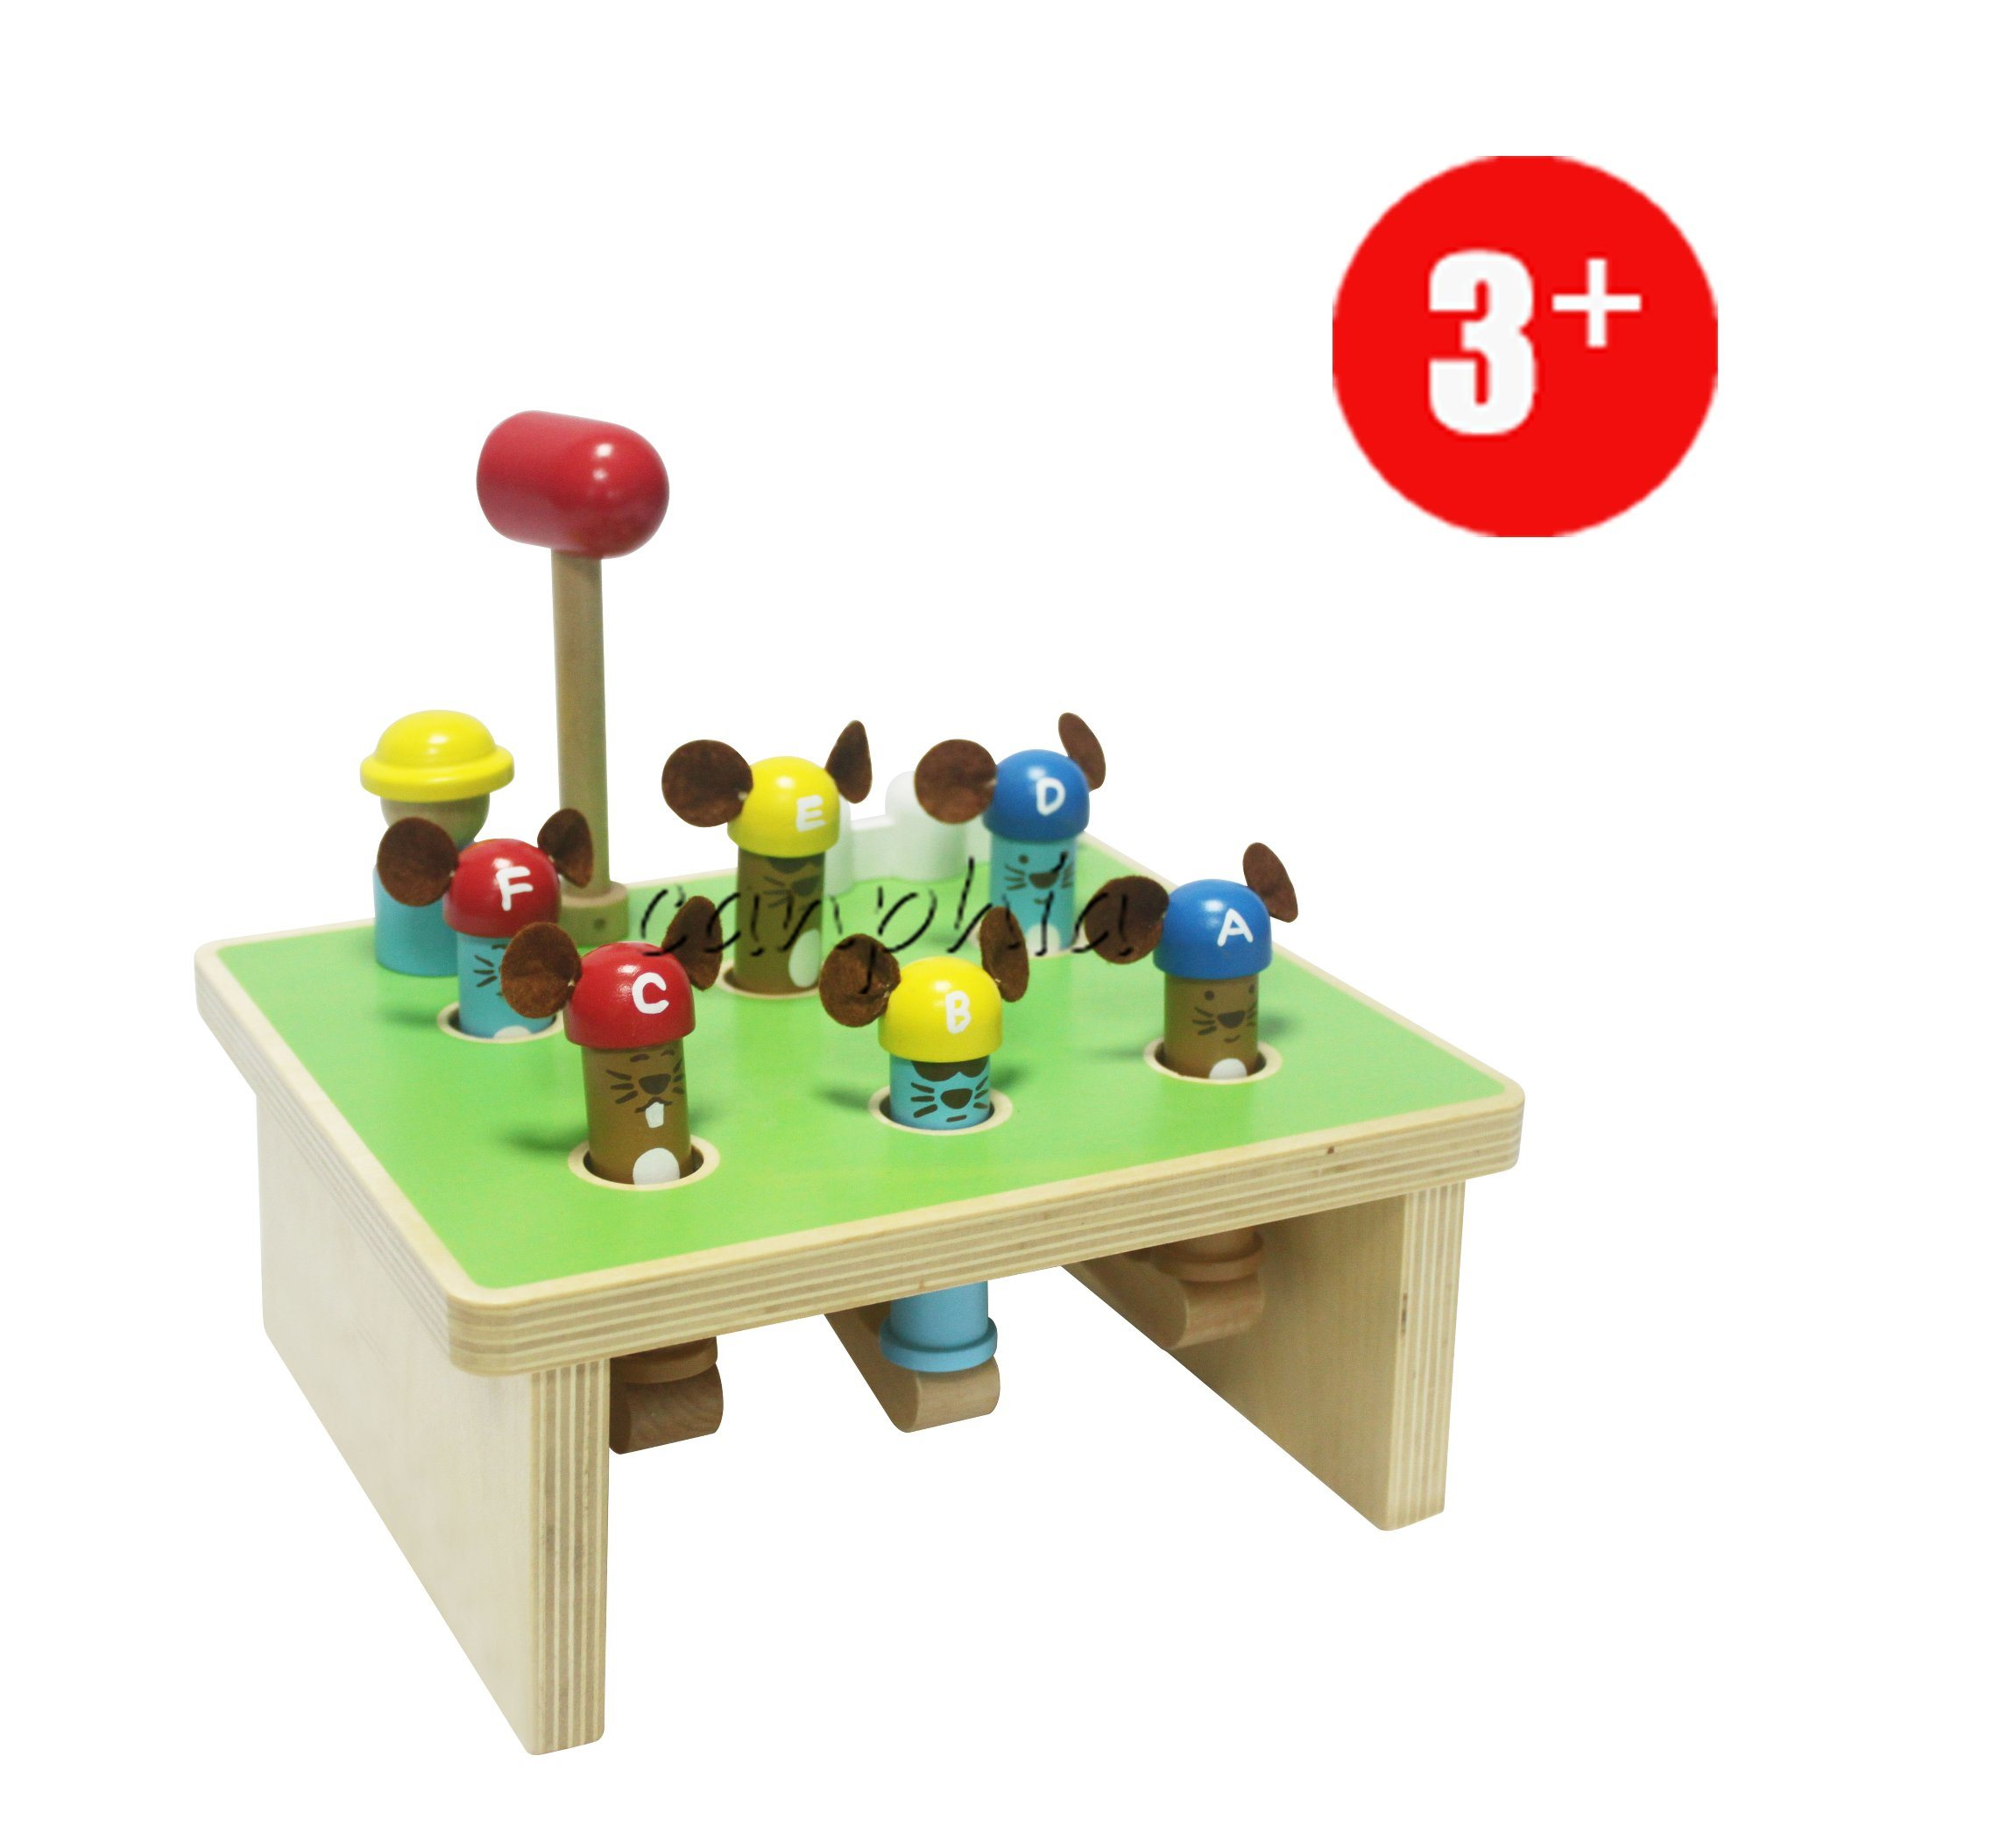 Wooden Educational Six Wooden Mouse and Wooden Hammer Play